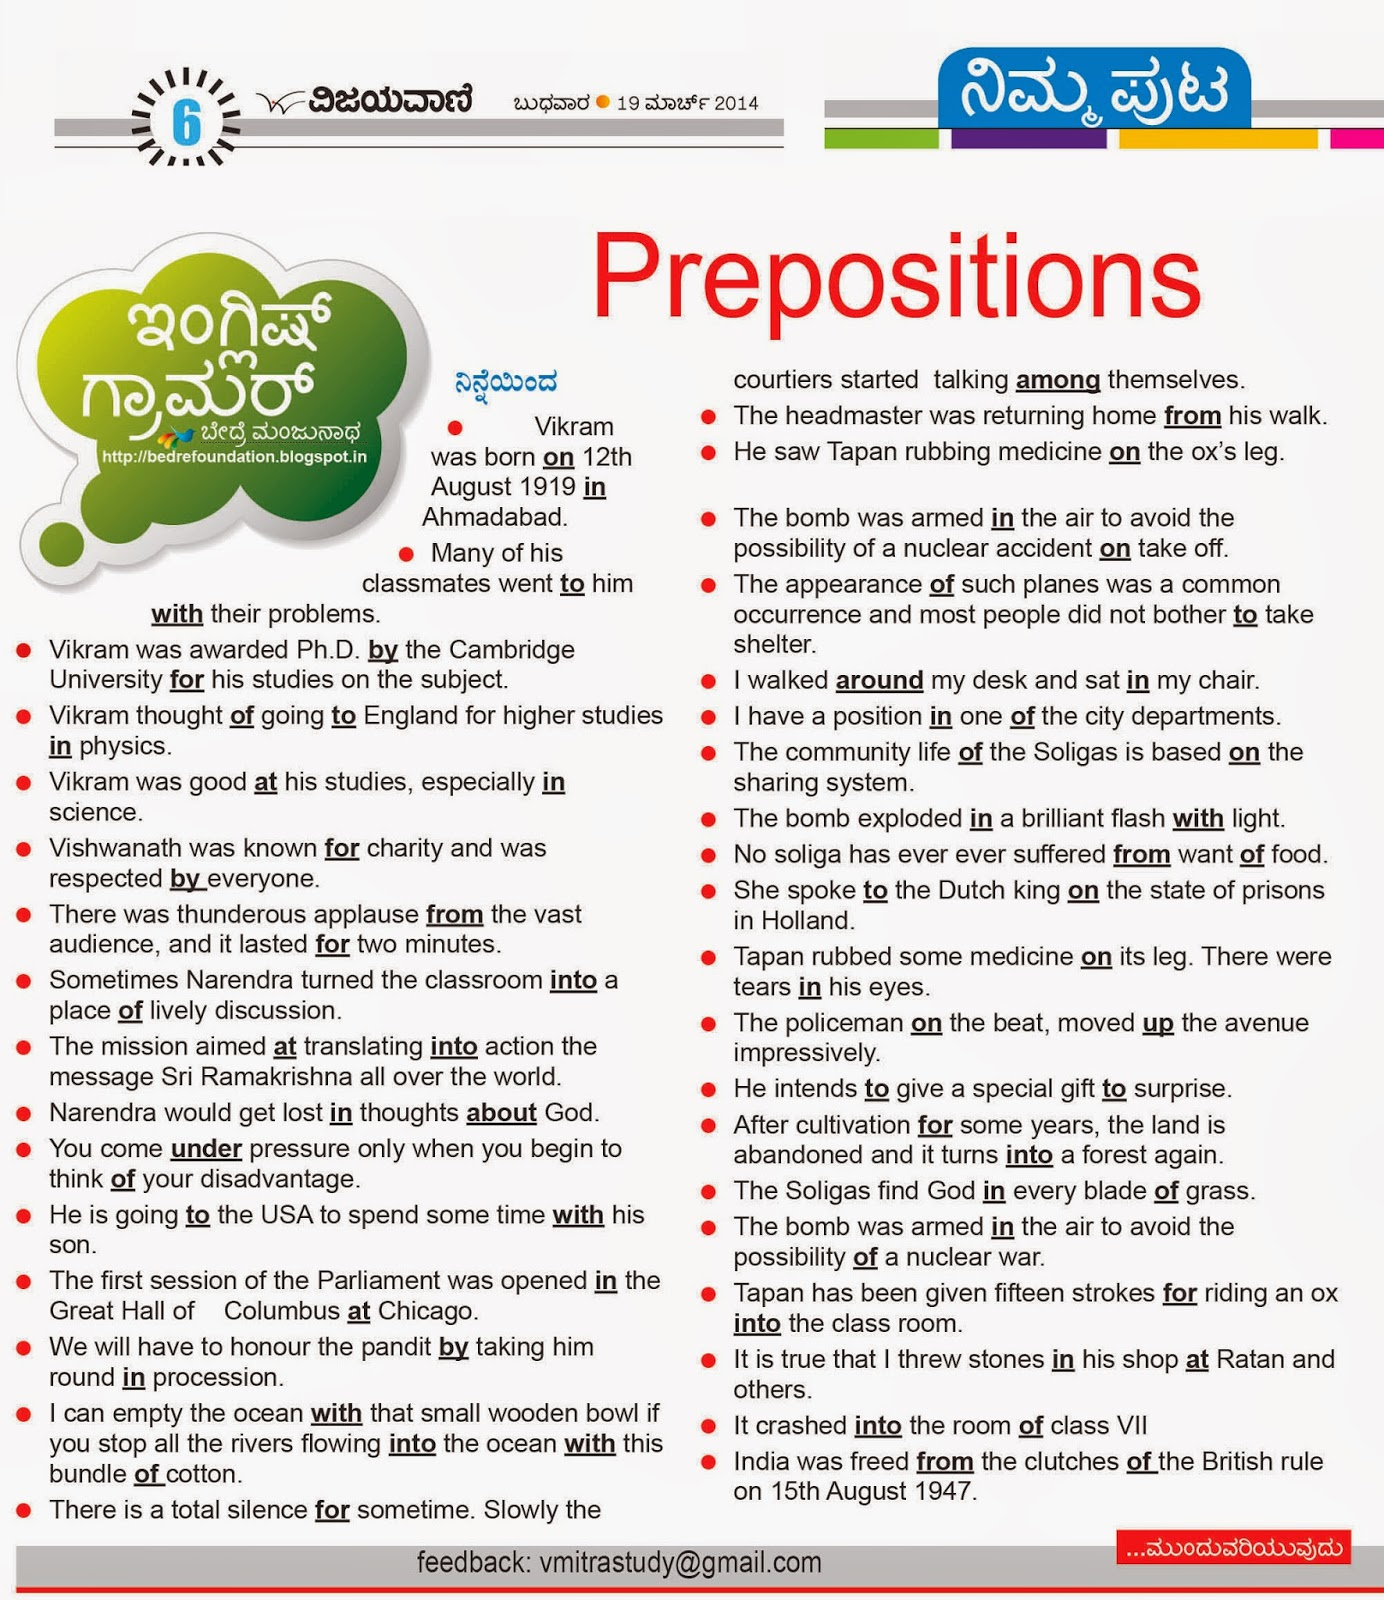 Preposition In Learn In Marathi All Complate: ಬೇದ್ರೆ ಪ್ರತಿಷ್ಠಾನ: Prepositions Part 2